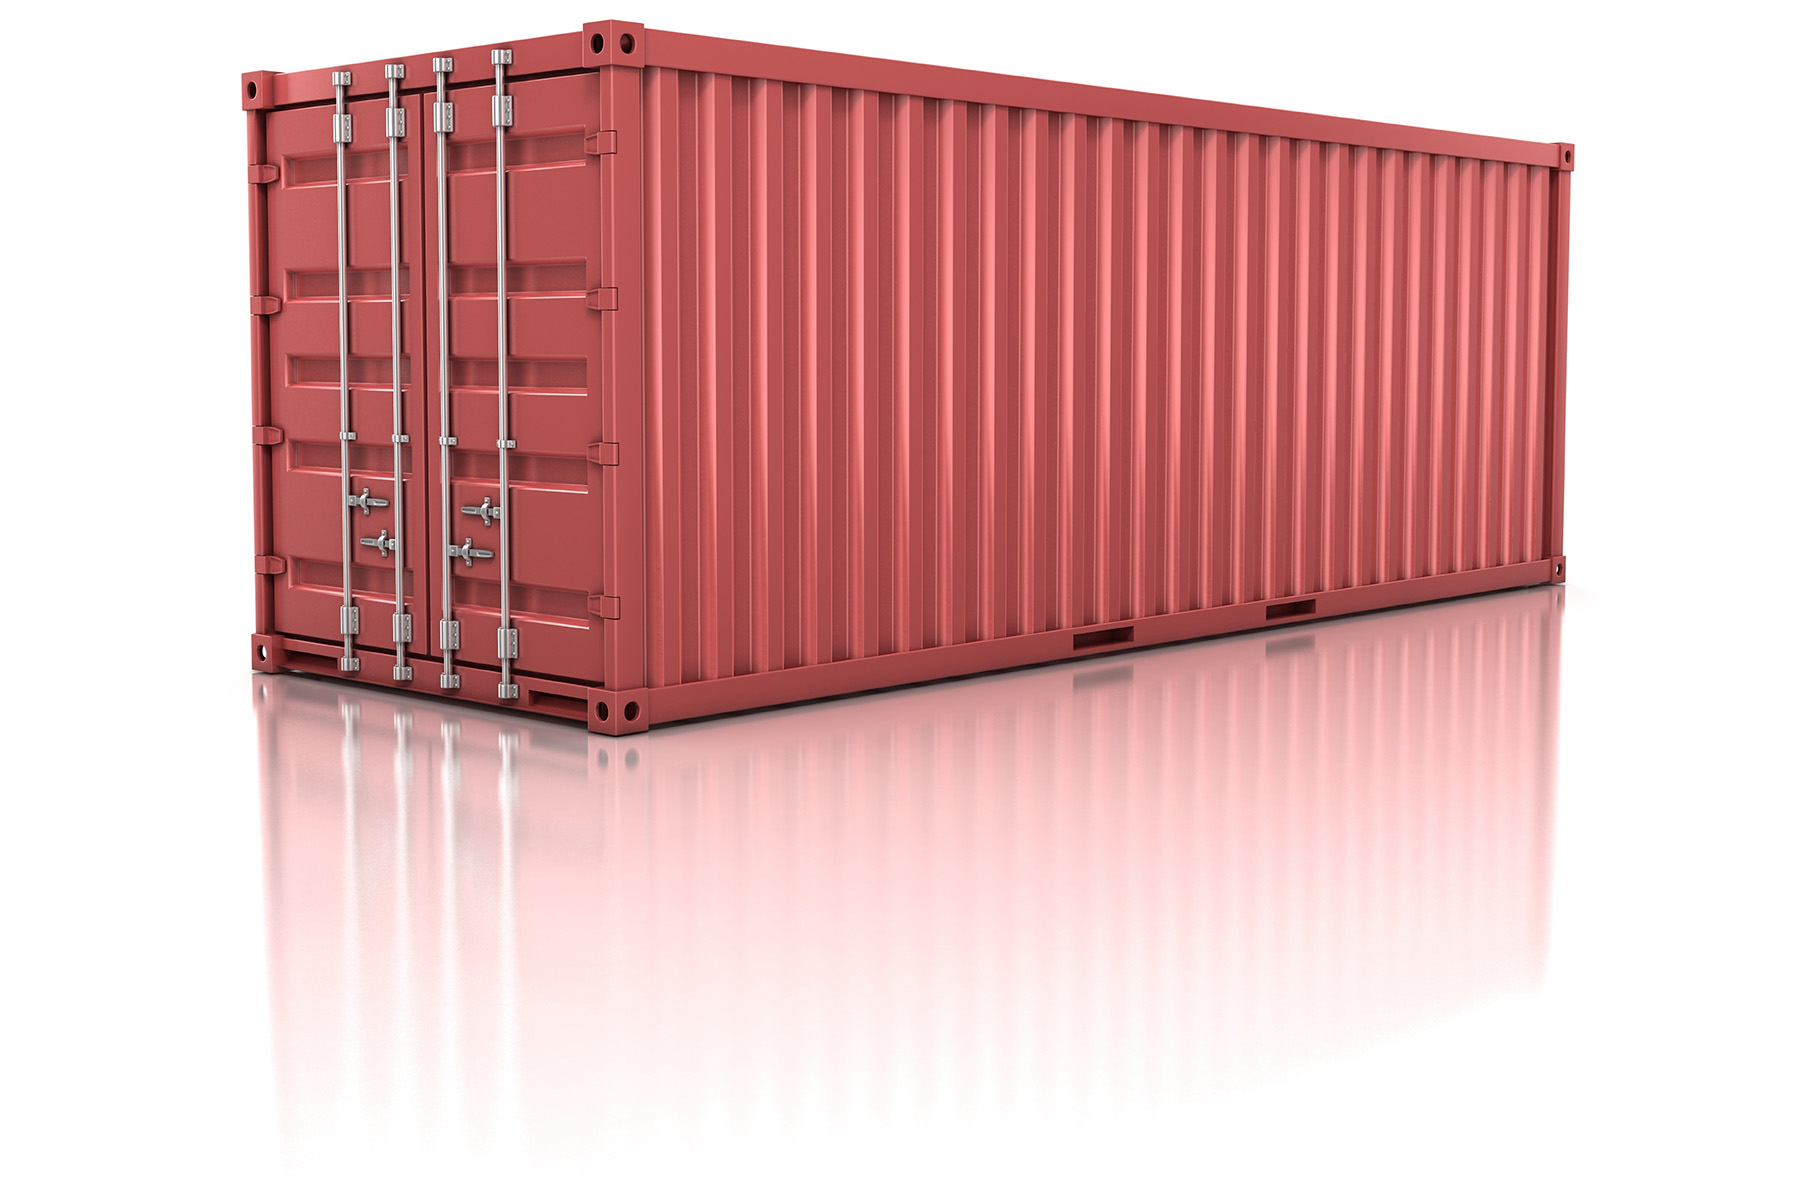 Shipping Storage Containers Cargo Containers for Sale